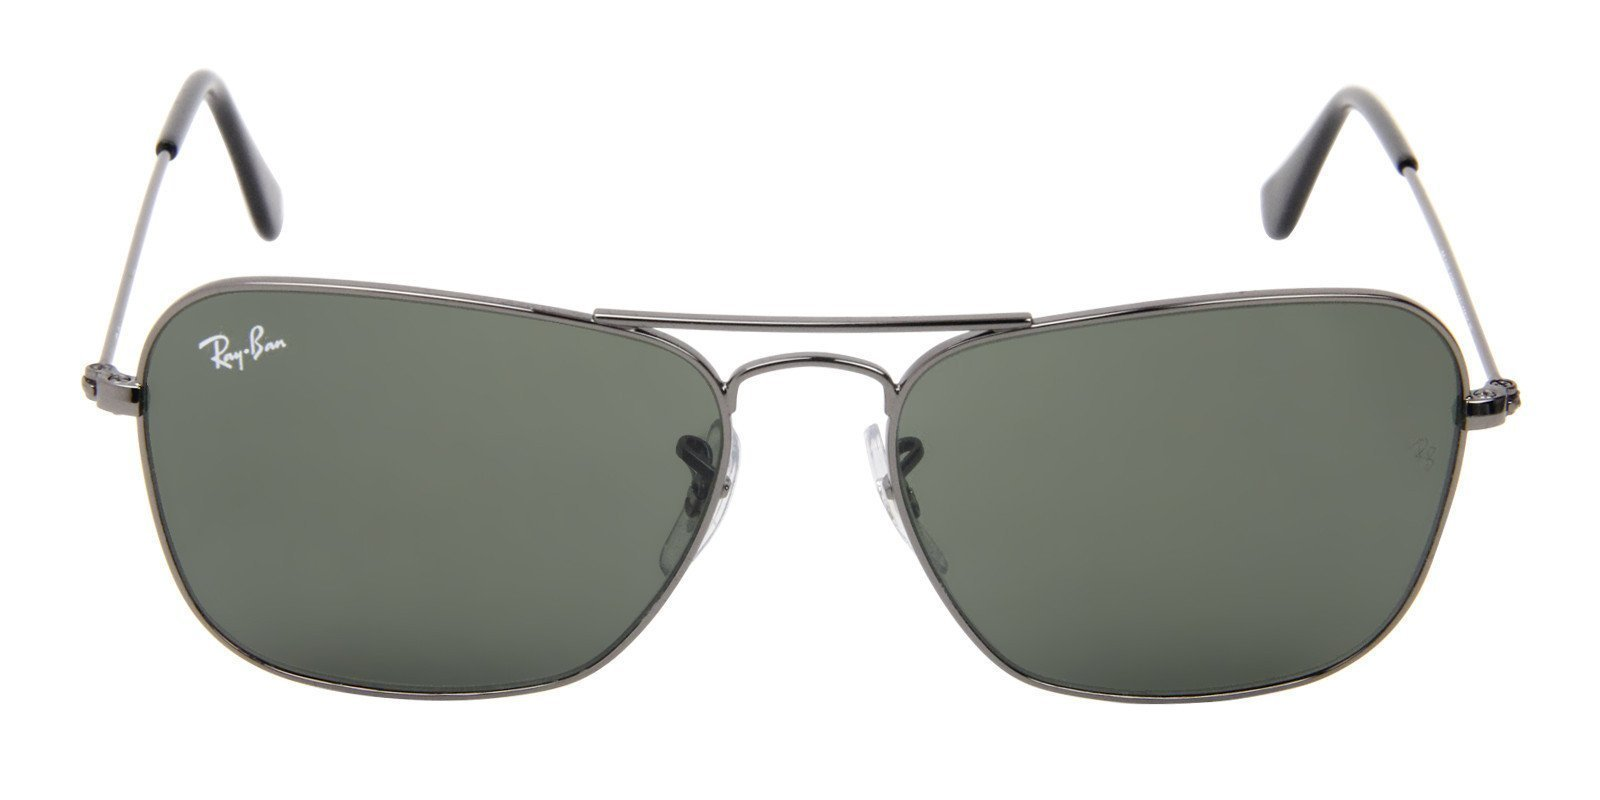 566bc40d58 ... inexpensive check out the ray ban rb 3136 caravan sunglasses. 22c4a  c62fb